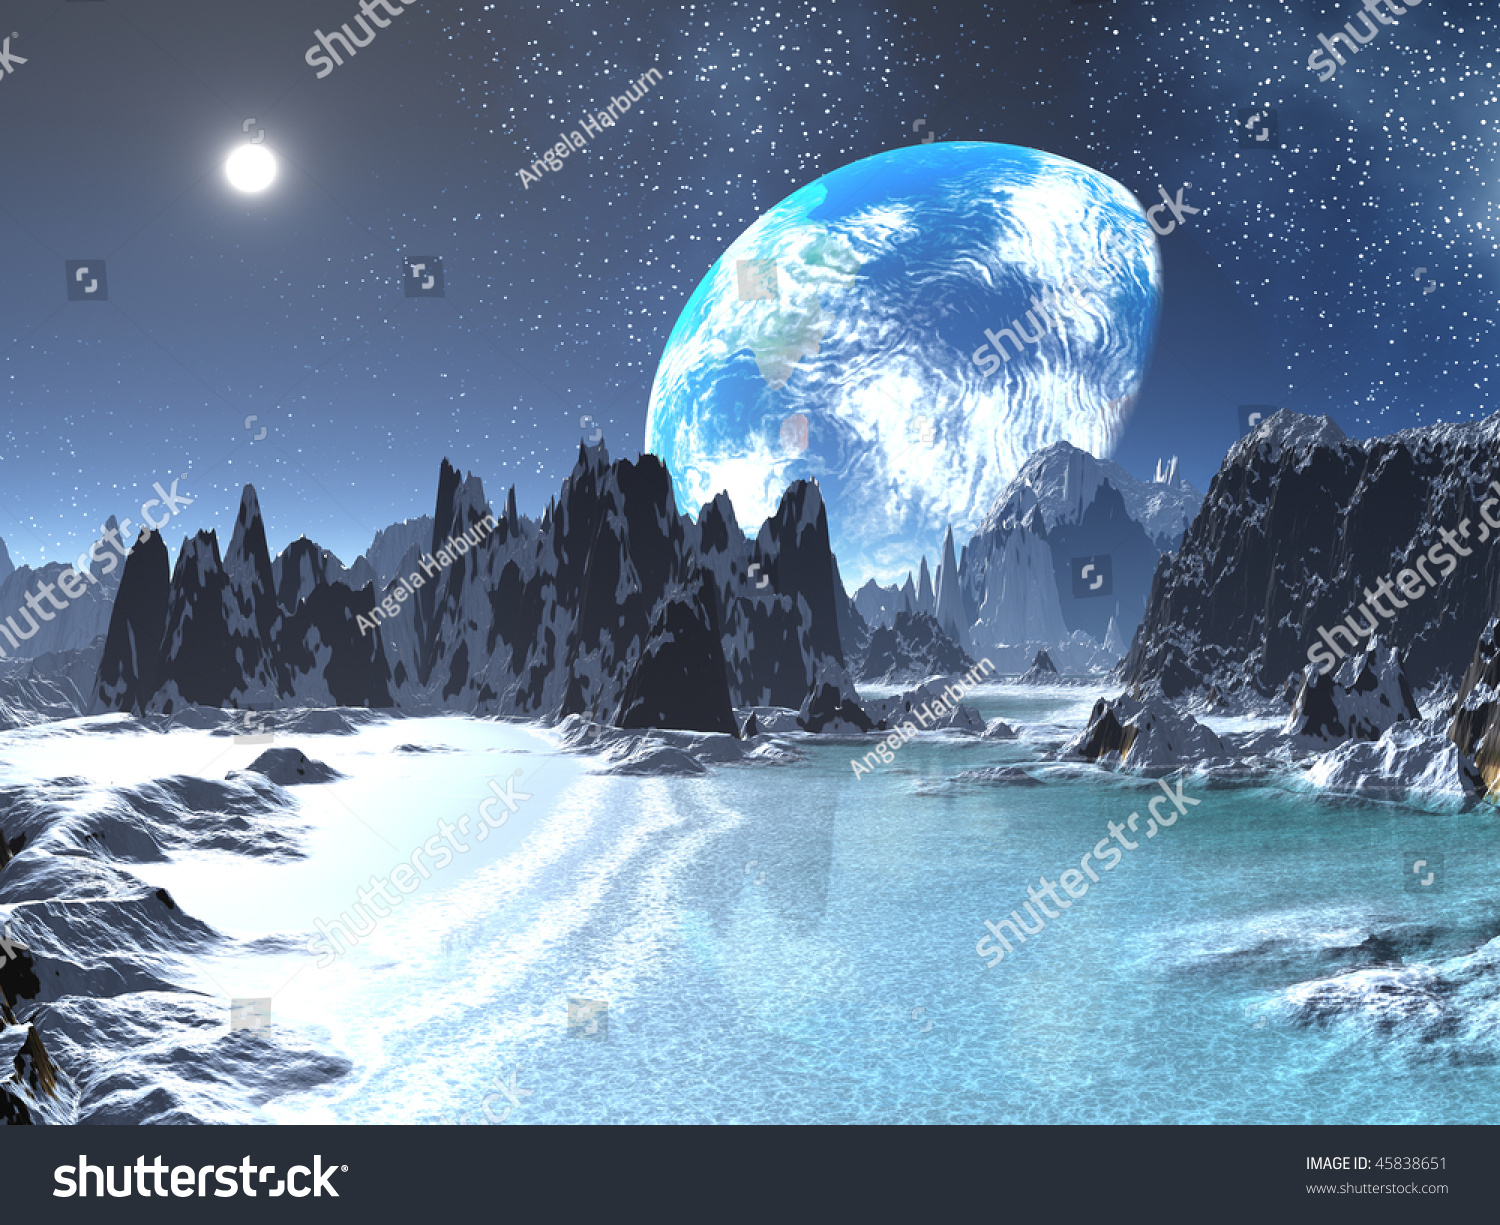 winter earthrise alien beach stock illustration 45838651 - shutterstock